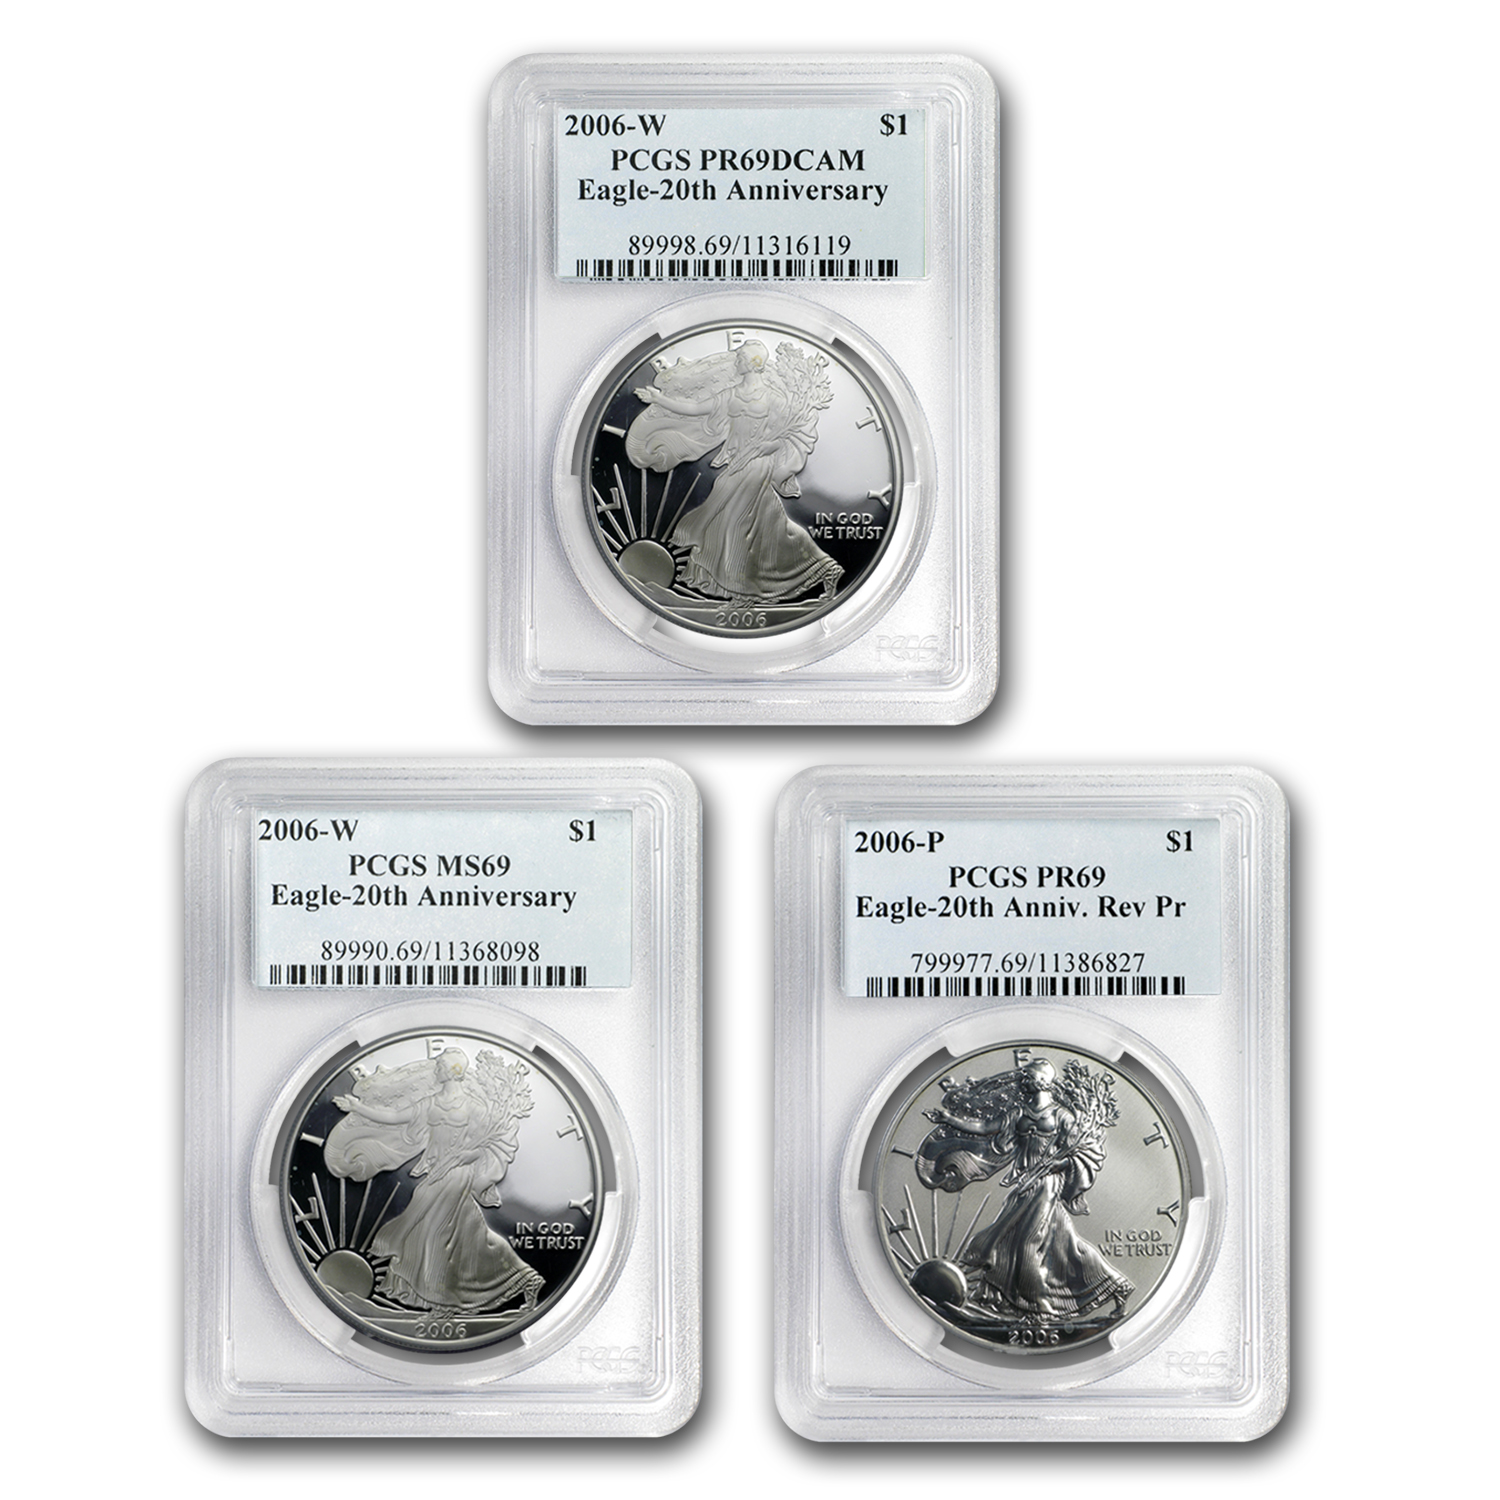 2006-W 3-Coin Silver American Eagle Set MS/PR-69 PCGS